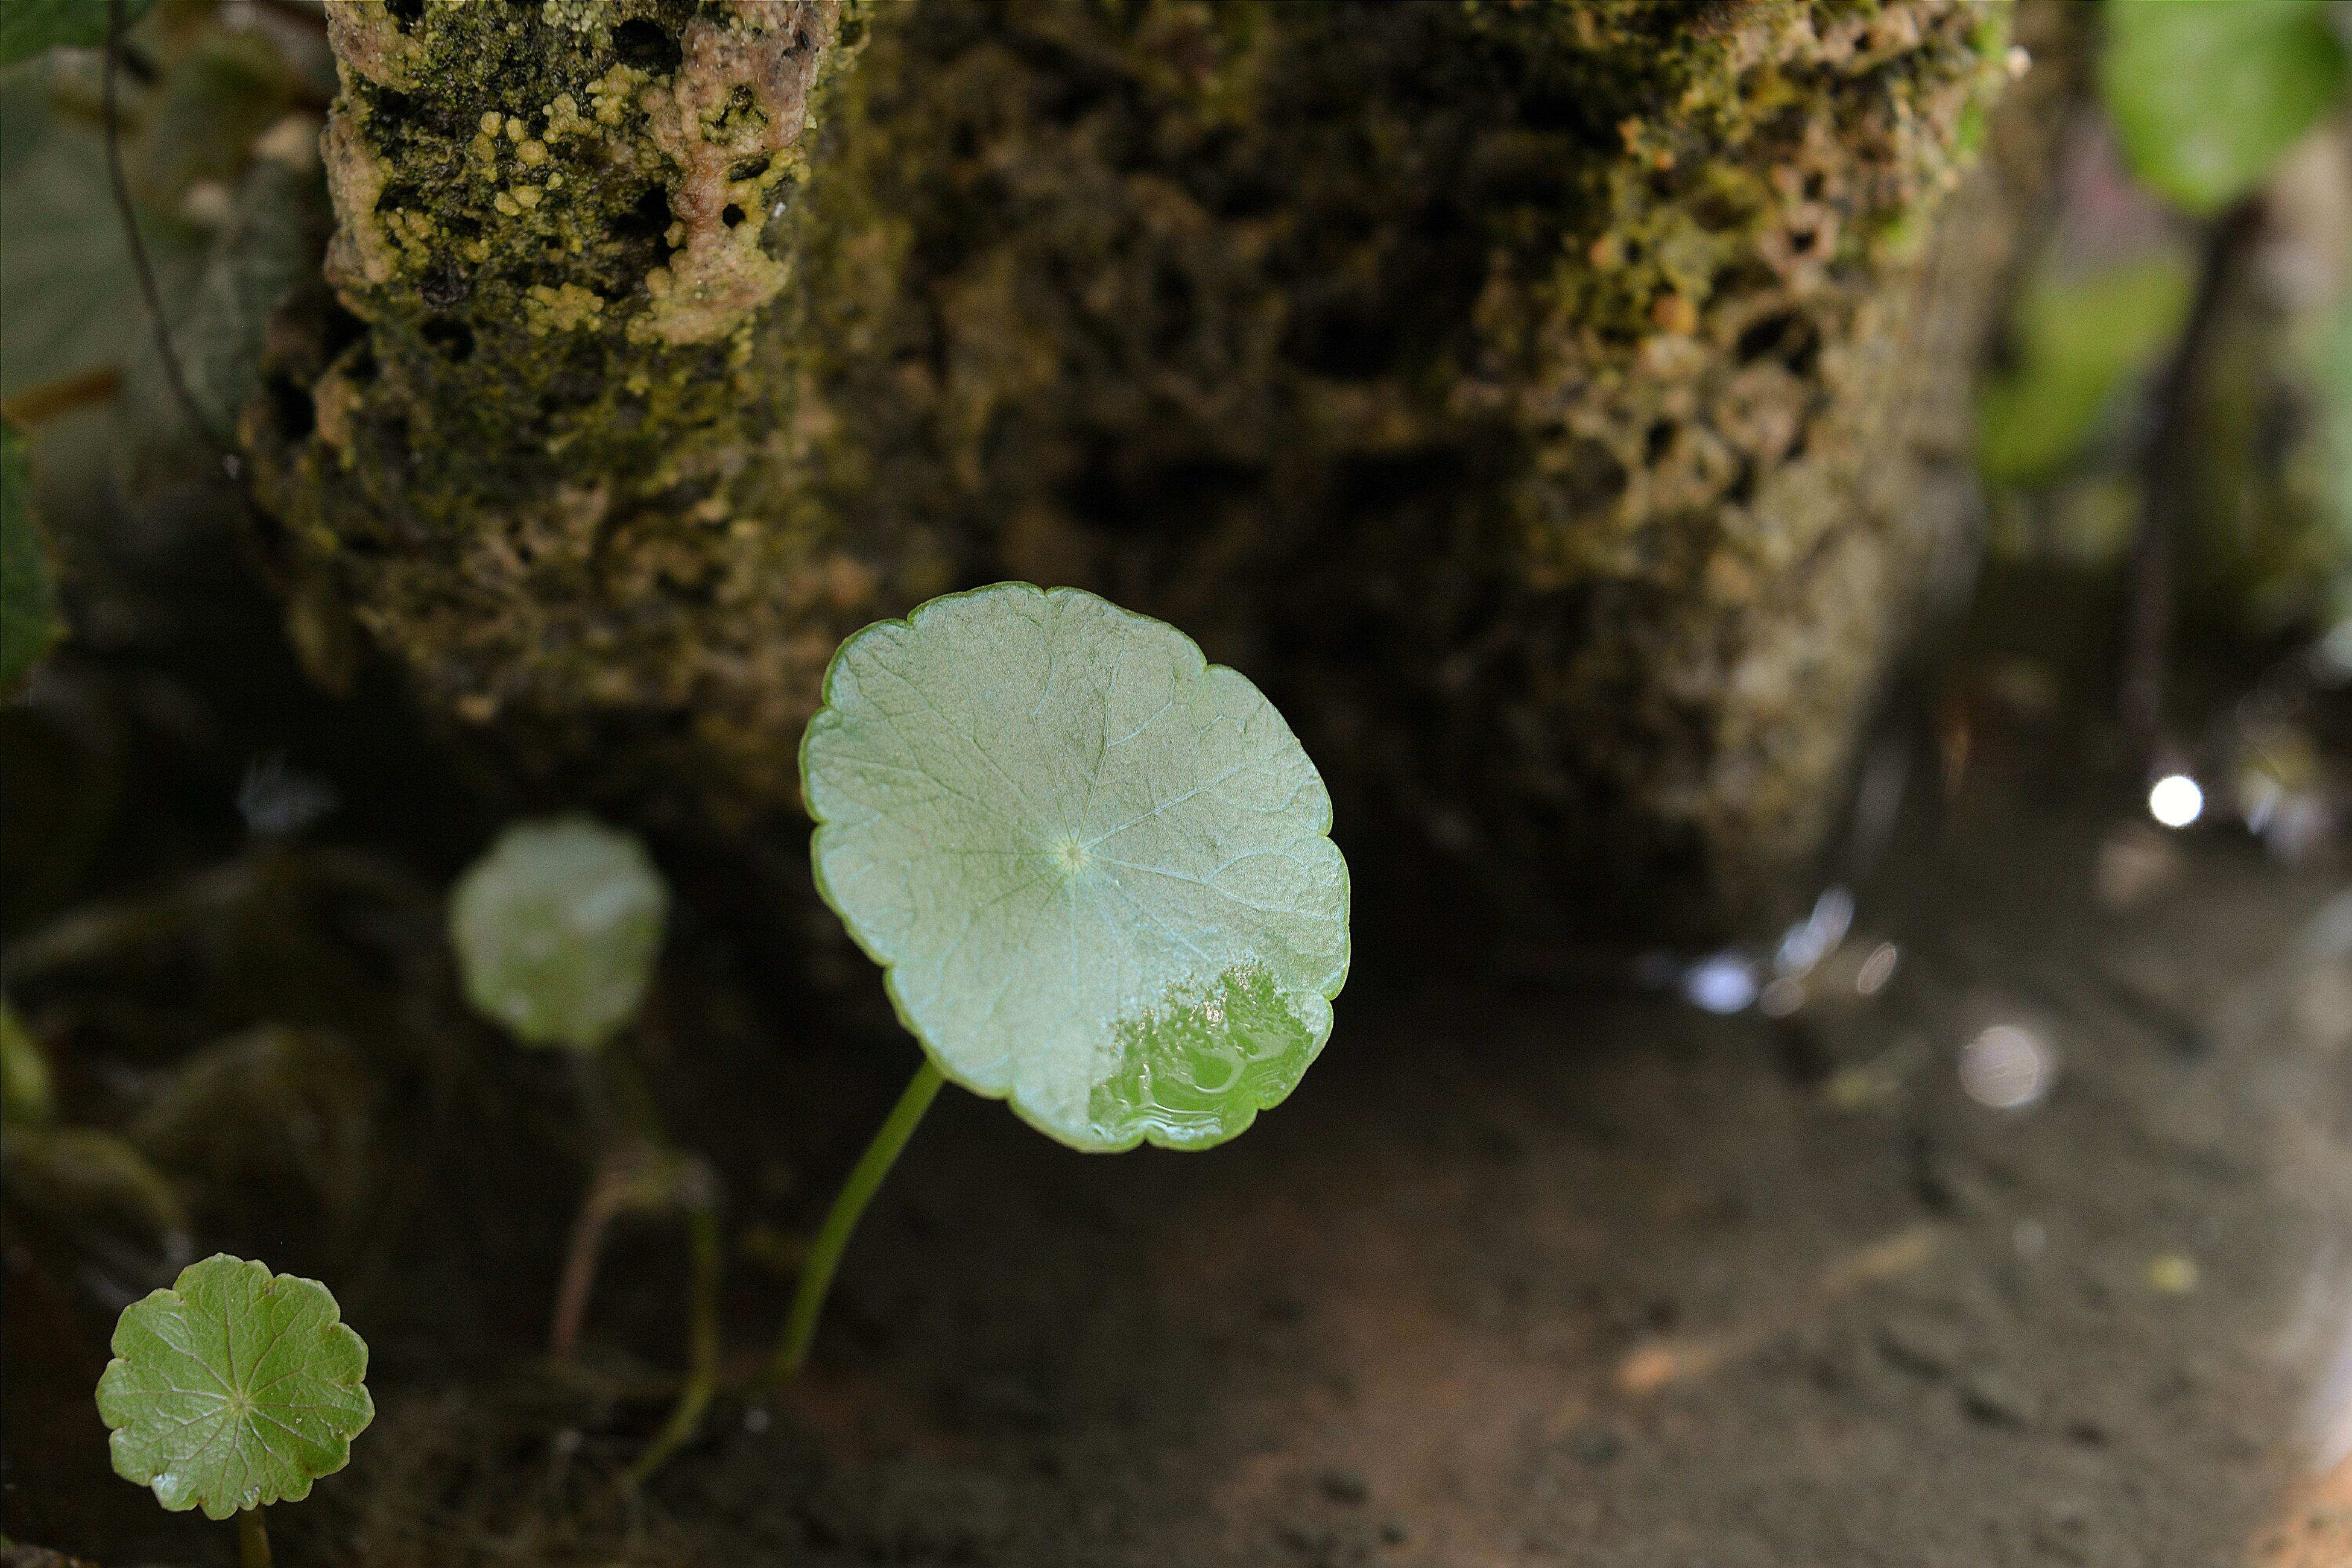 growth, close-up, nature, focus on foreground, leaf, beauty in nature, plant, fragility, fungus, forest, tranquility, mushroom, growing, white color, day, freshness, selective focus, green color, moss, outdoors